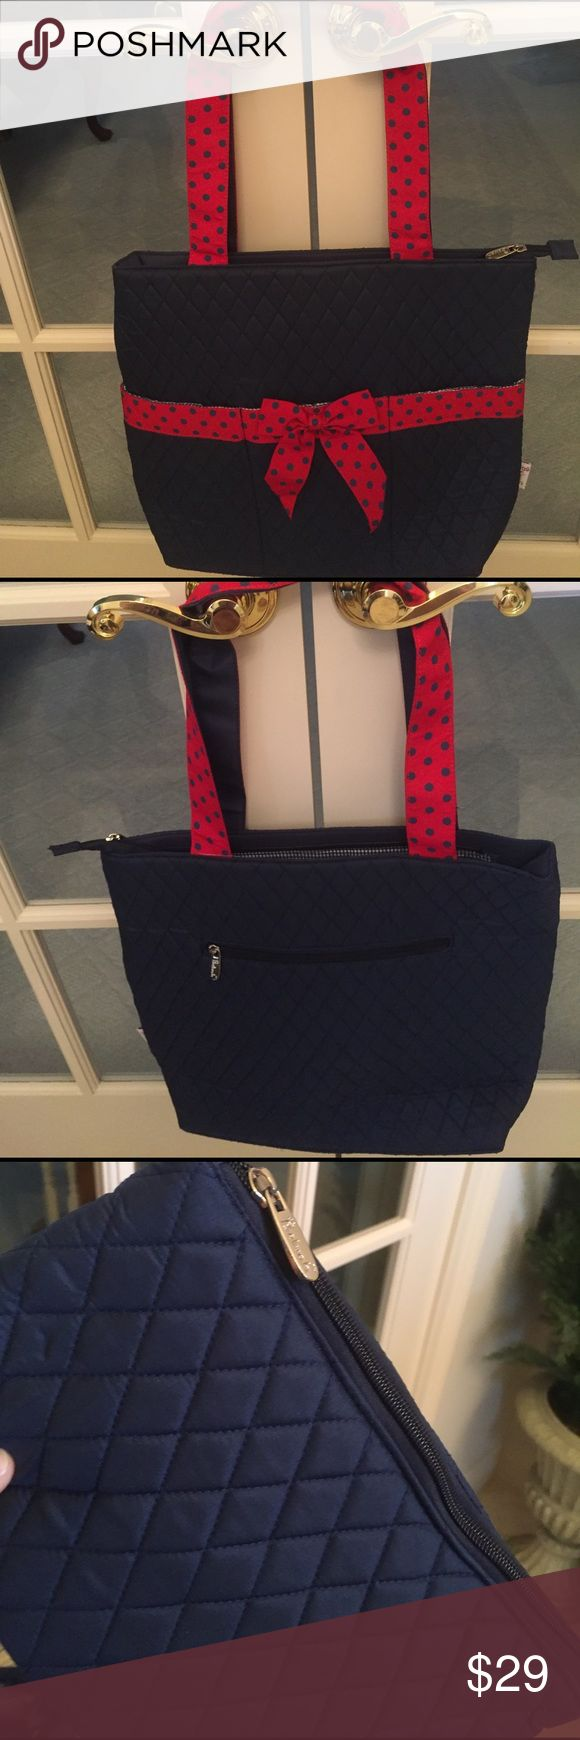 NWT - Tote / purse / diaper bag I myself use this style  bag as a purse.  It is very versatile as I comes with a cosmetic bag and a changing pad. Bags Totes